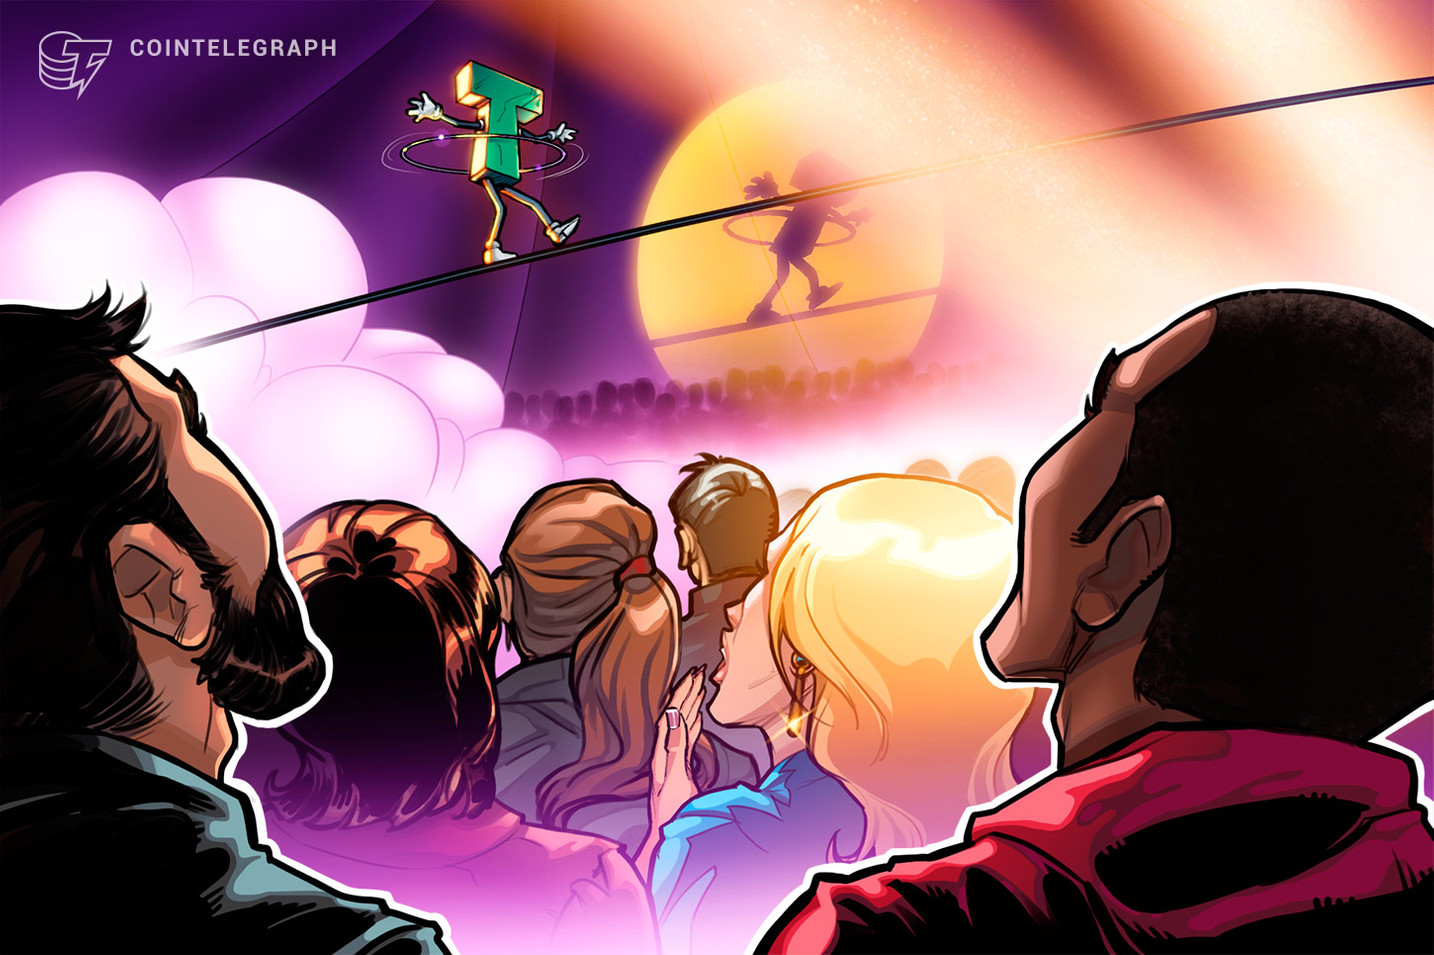 Tether Mints $250 Mln of New USDT Tokens, Rekindles Controversy